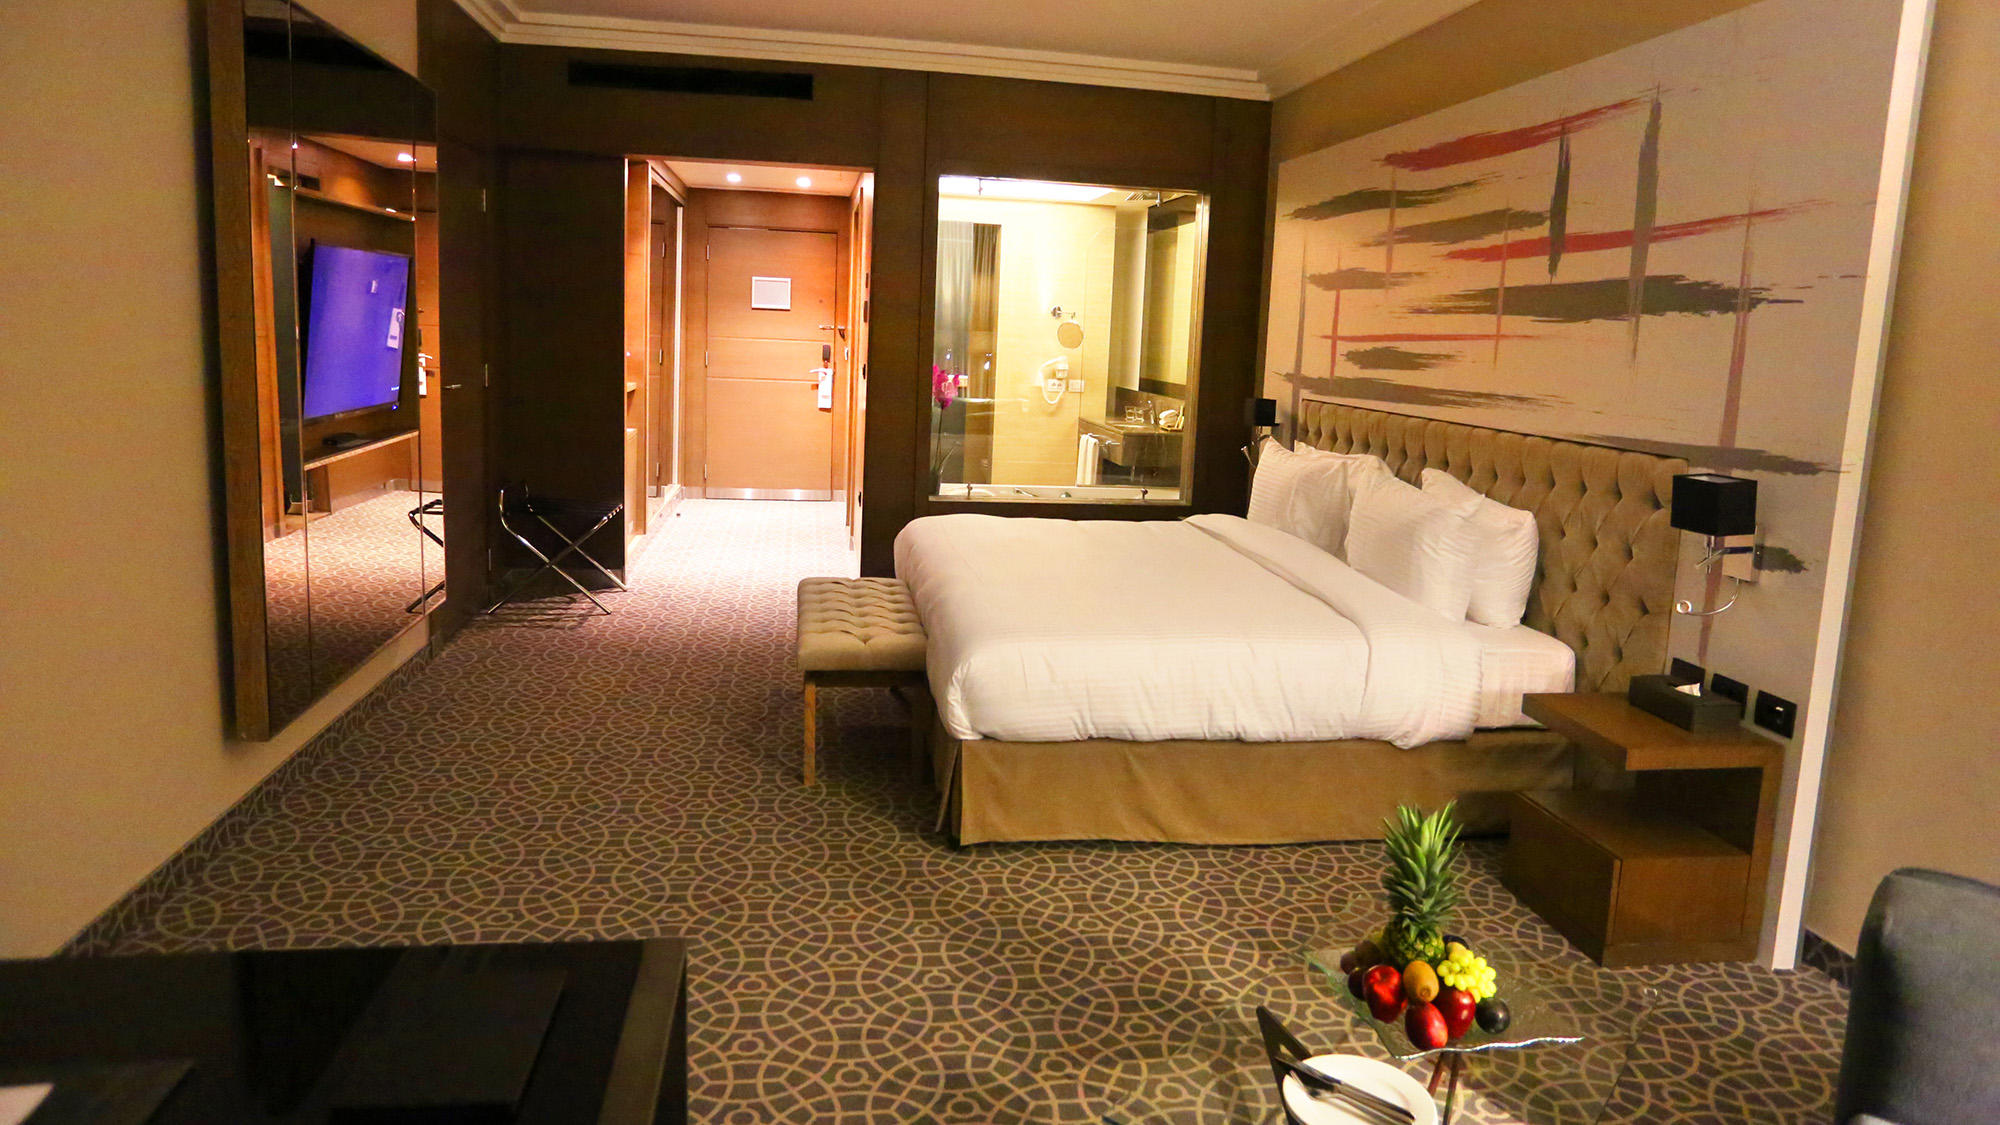 Premier Room at Mist hotel and Spa by Warwick